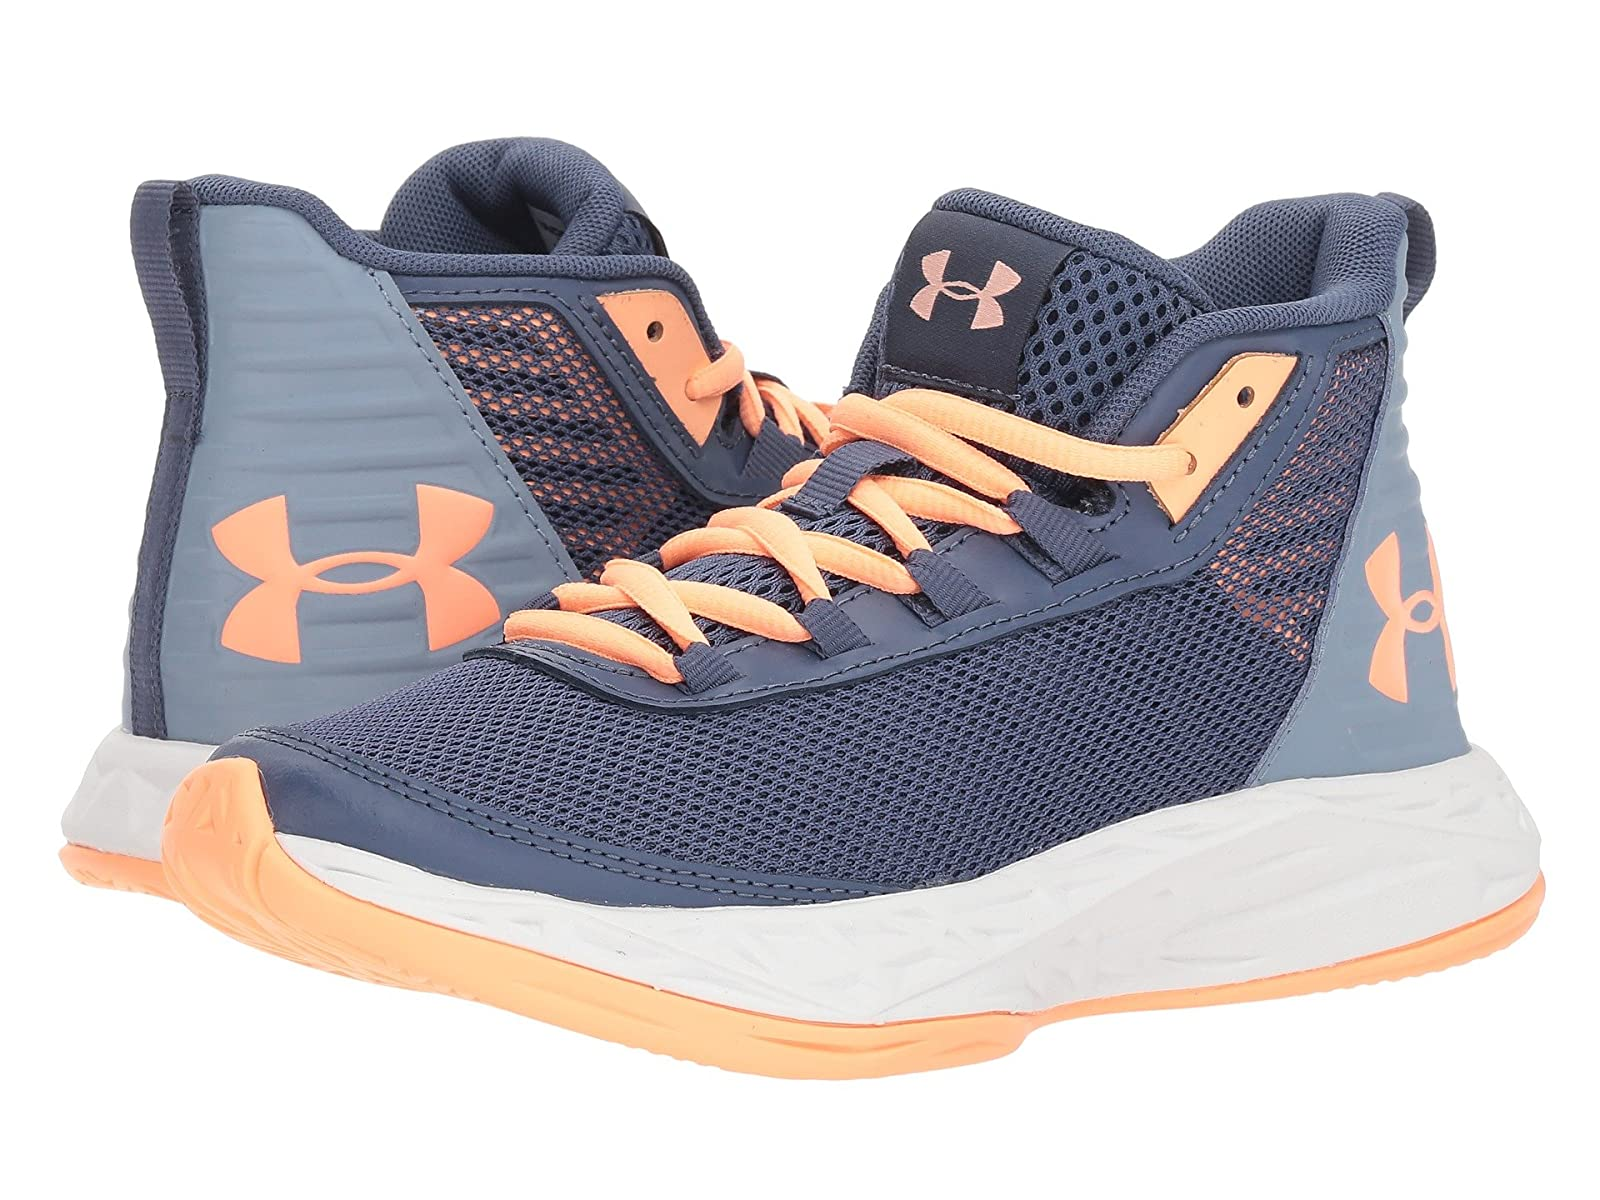 Under Armour Kids UA GGS Jet 2018 (Big Kid)Atmospheric grades have affordable shoes